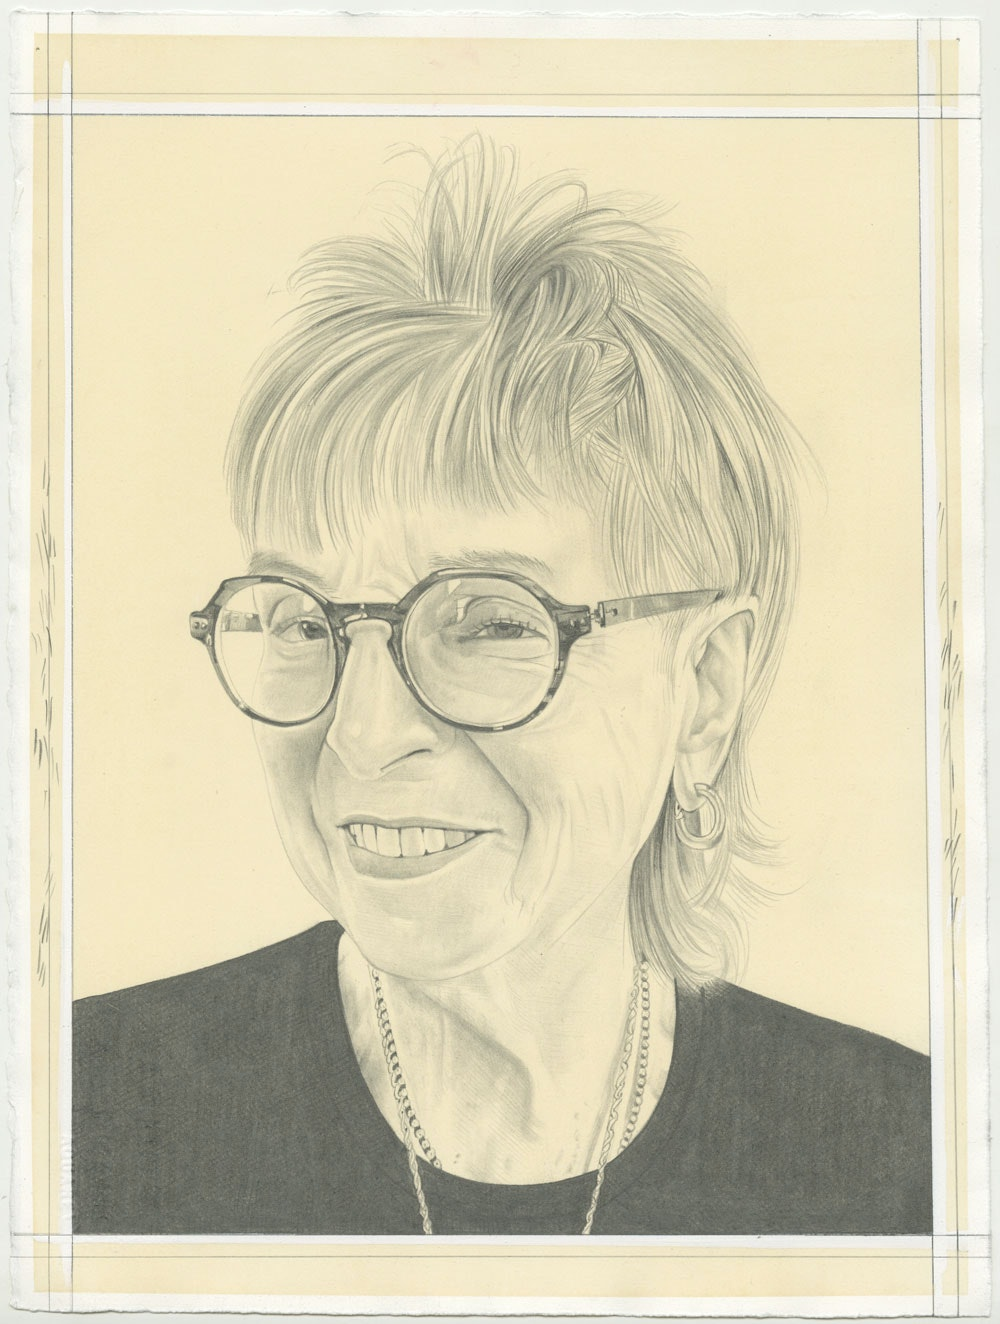 Portait of Audrey Flack, pencil on paper by Phong H. Bui.